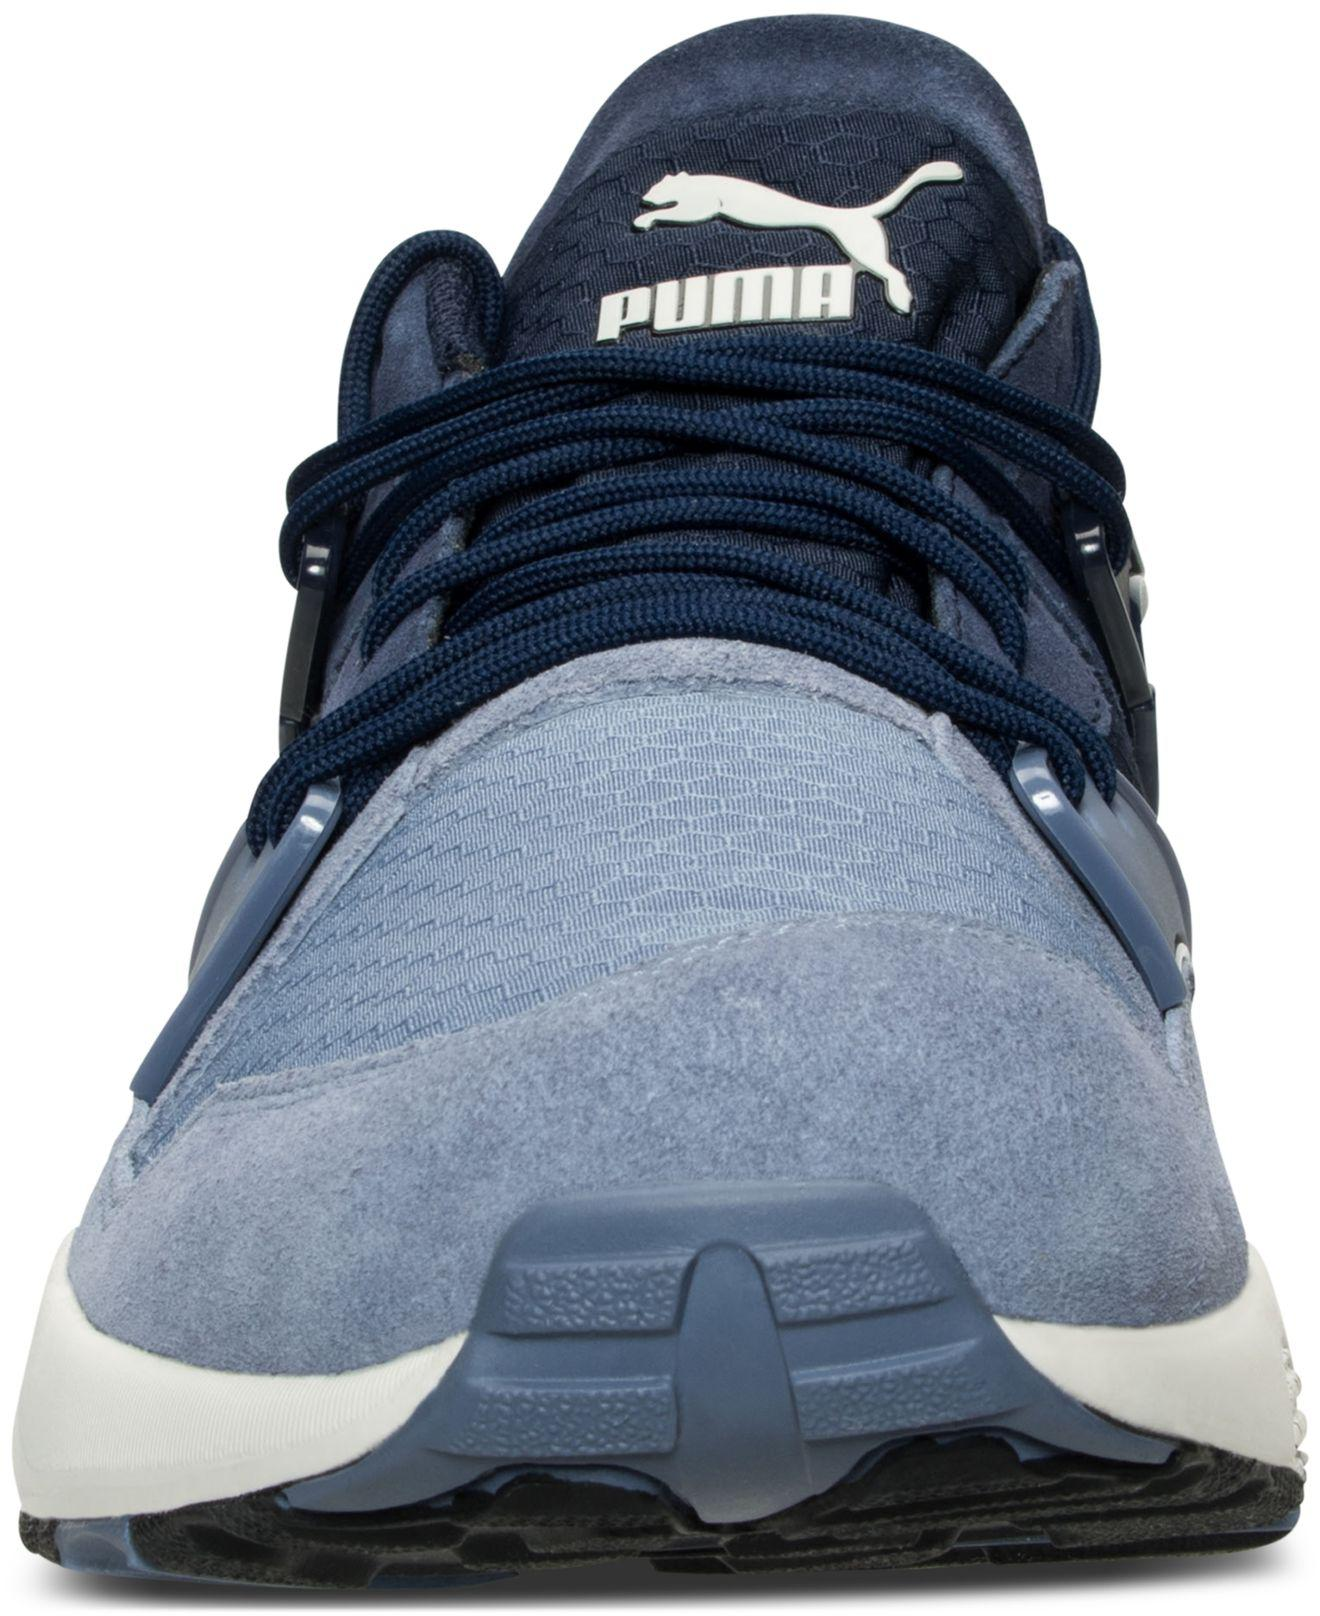 31abe93edc4147 Puma Mens Winter Blaze Tech Casual Sneakers Fabric Low Top Lace Up Running  Sn..